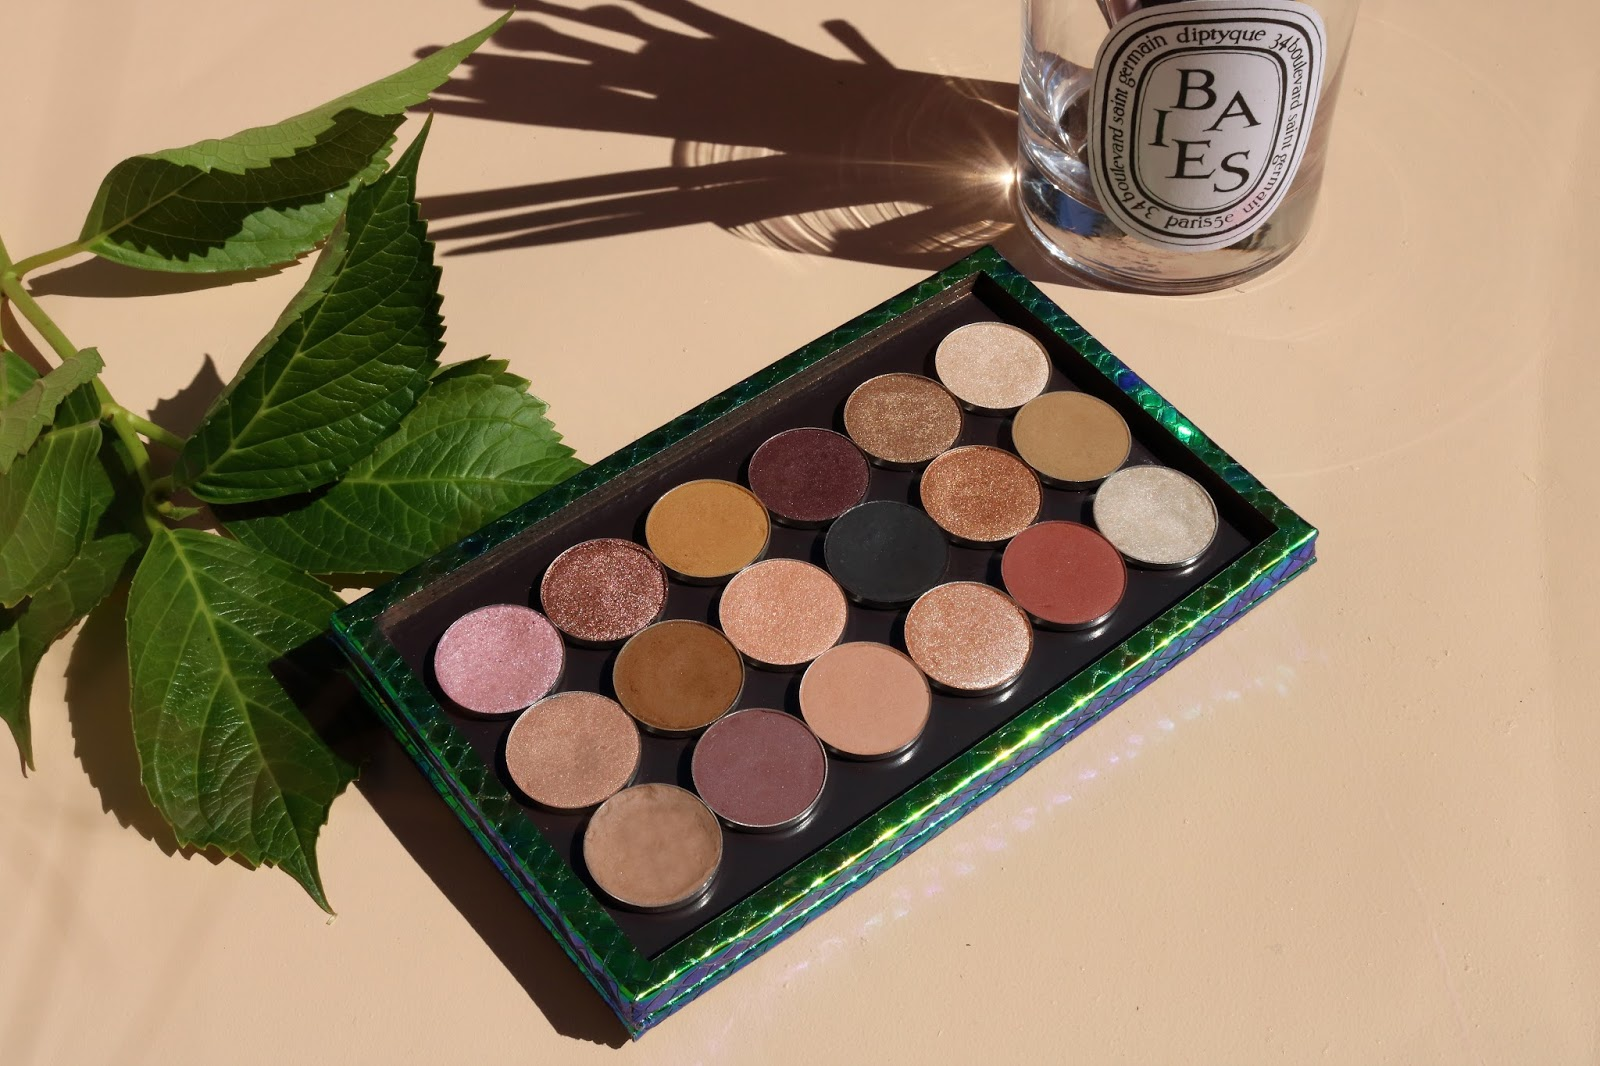 neutral summer fall eyeshadow tz cosmetix z palette whats in my palette flaylay baies colourpop makeup geek eye of horus